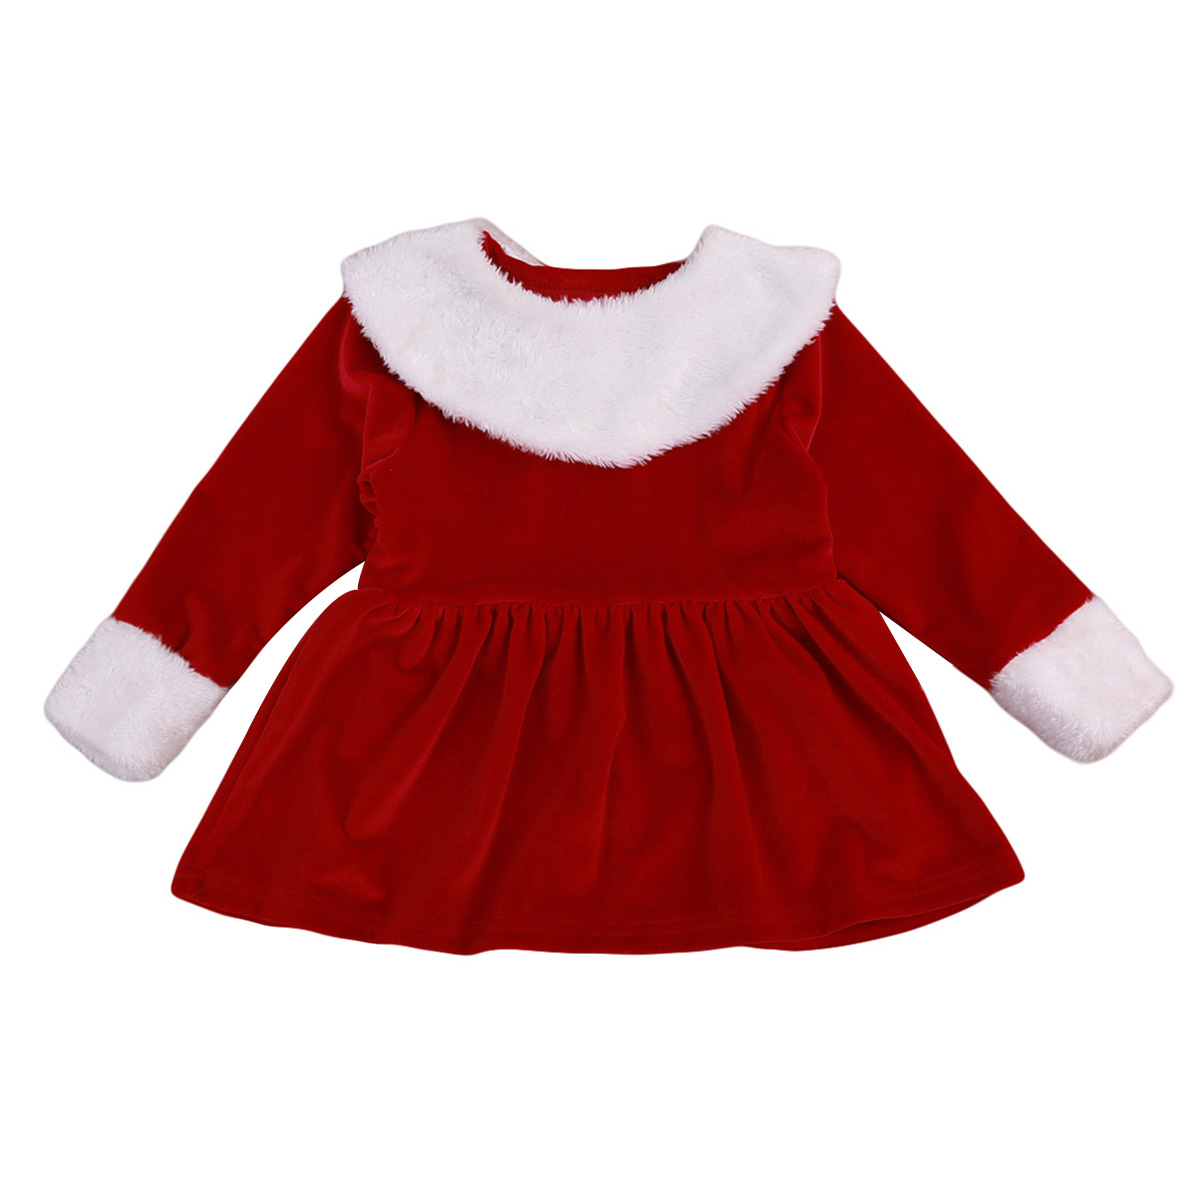 2017 Christmas Newborn Toddler Baby Girls Long Sleeves Velvet Dress Red  Patchwork Christmas Cute Holiday Clothes 0-4Y 4ea96a0ba